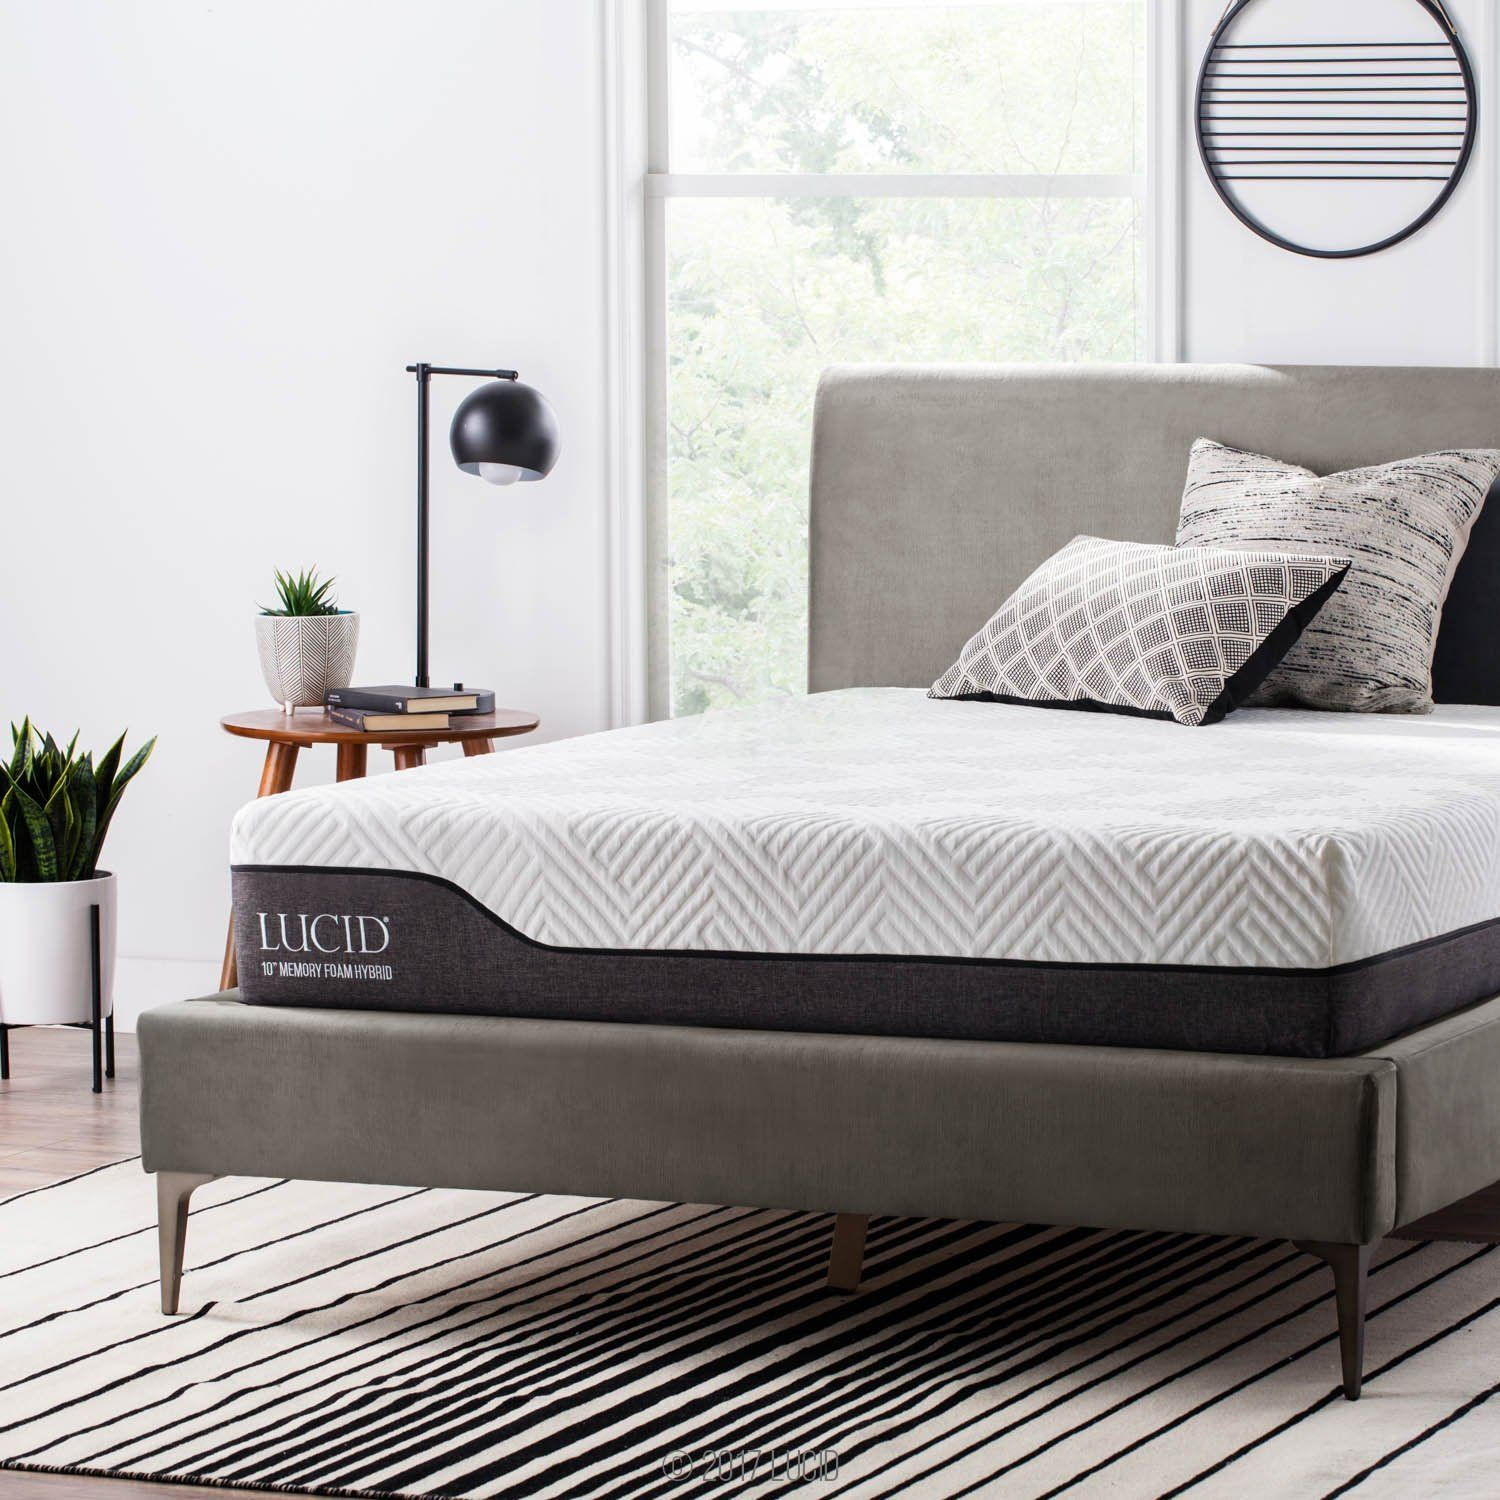 Lucid 10 Inch Bamboo Charcoal And Aloe Vera Infused Organic Mattress King Size Bedroom Furniture Hybrid Mattress Mattress